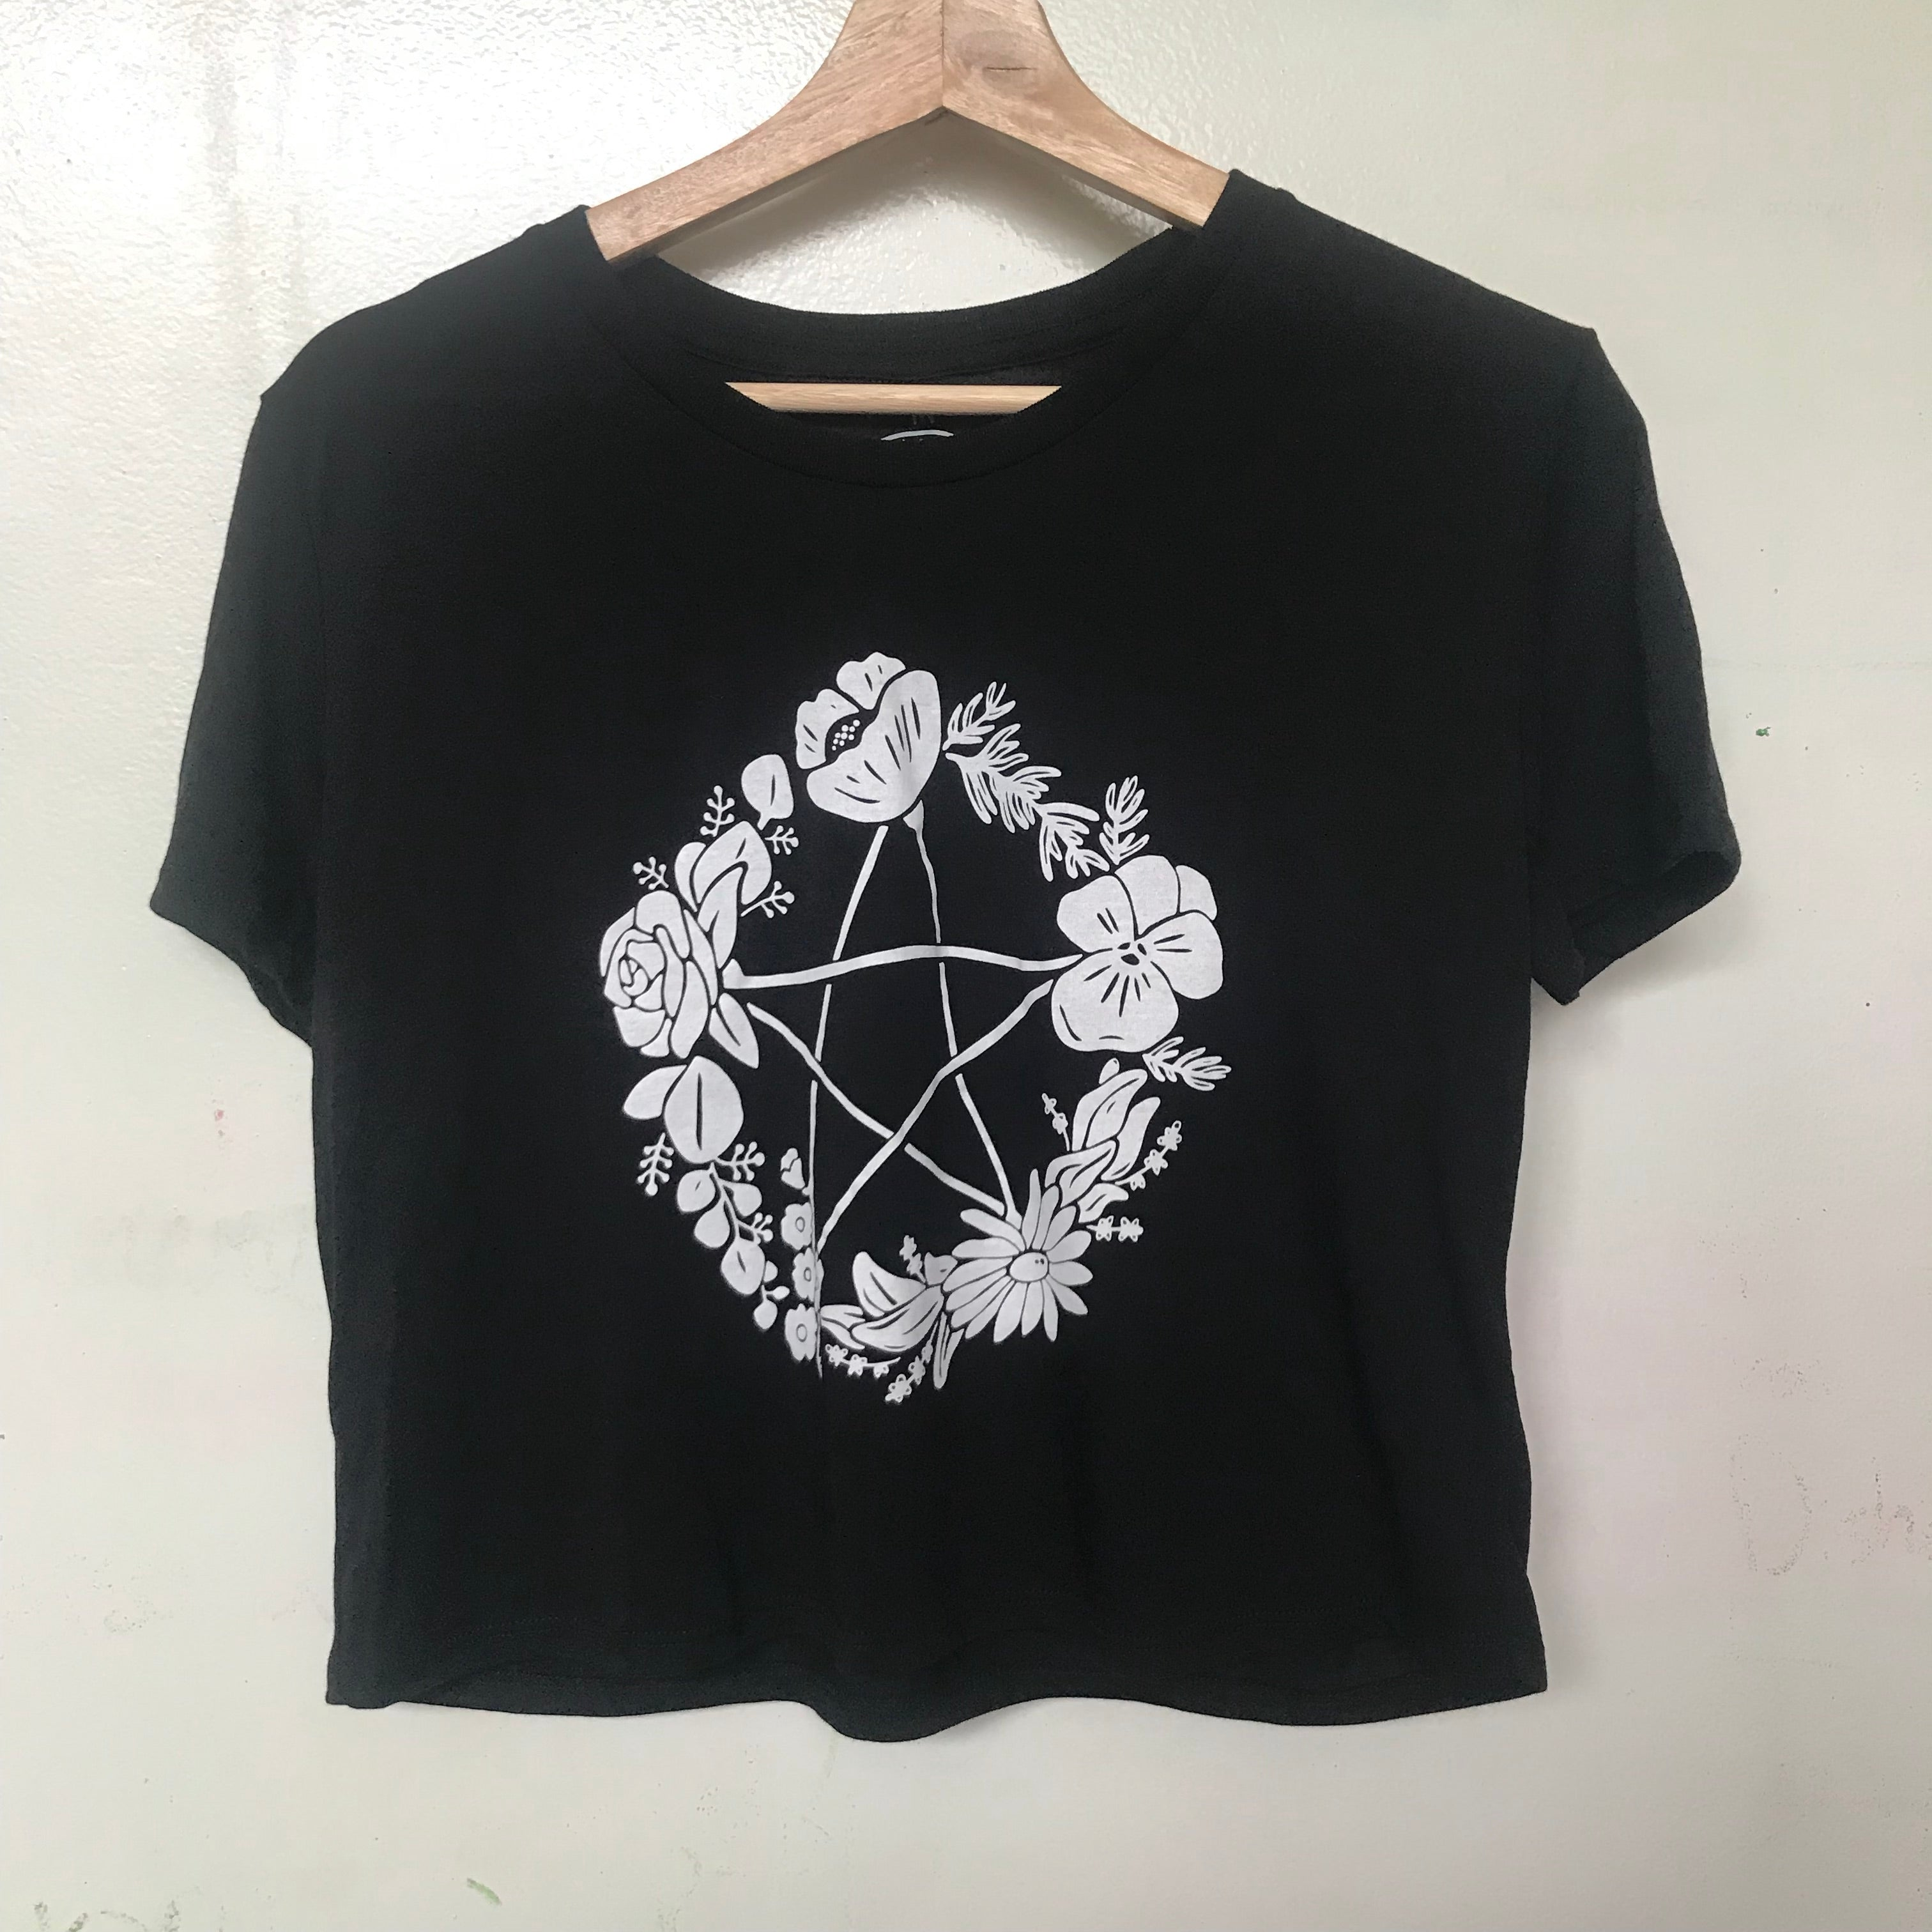 Floral Pentagram Flowy Cropped T-Shirt - Small/ Medium/ Large only